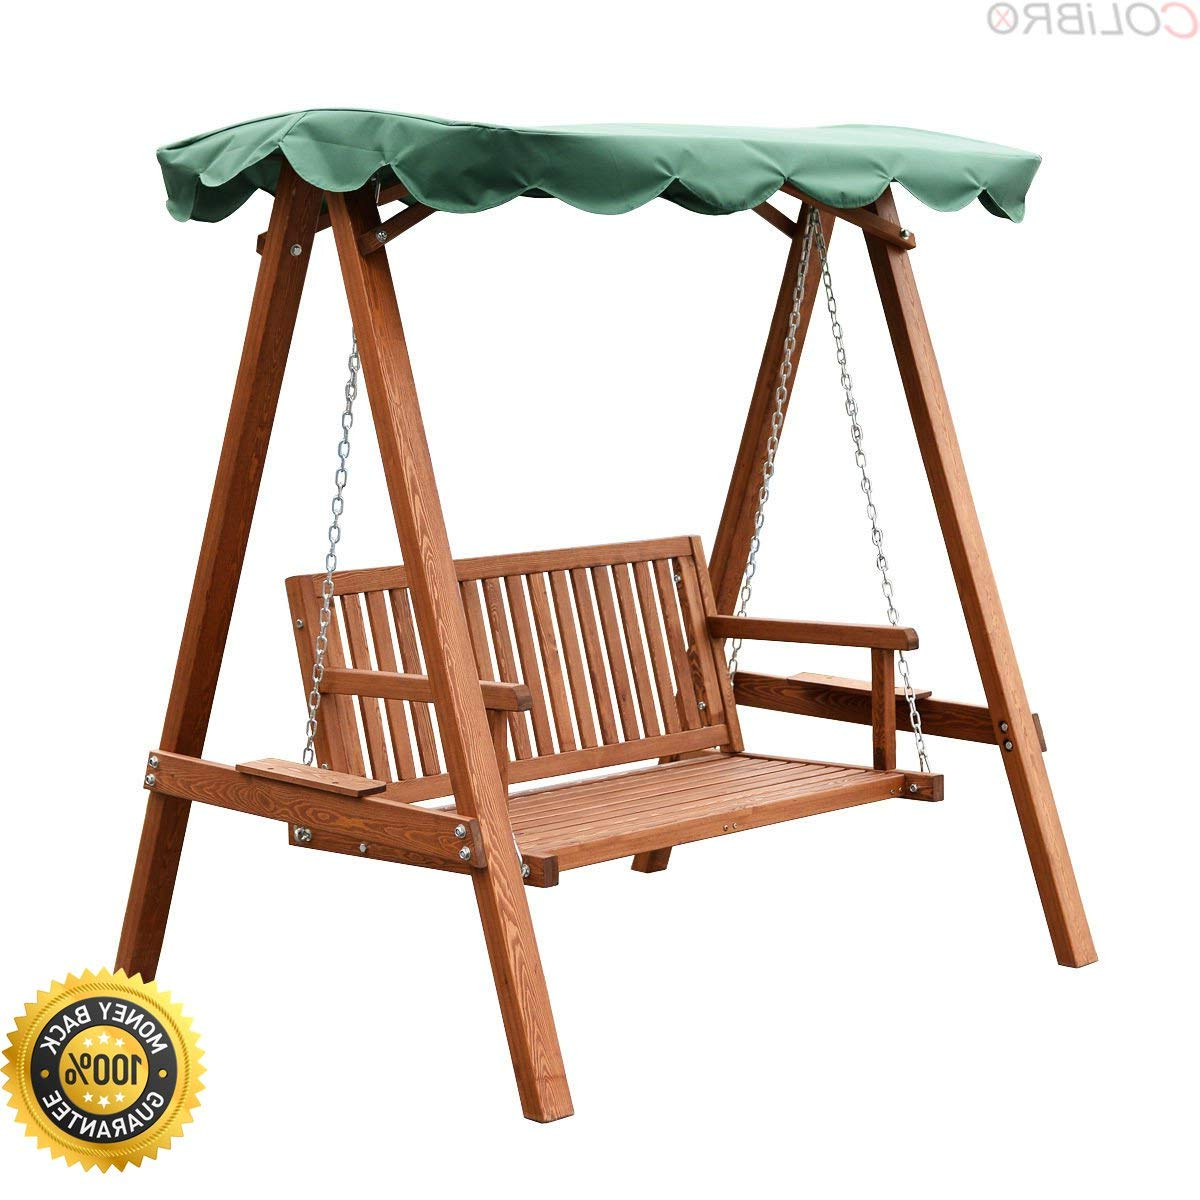 Cheap Wooden Garden Swing Seats Outdoor Furniture, Find With Recent 3 Person Natural Cedar Wood Outdoor Swings (View 7 of 25)